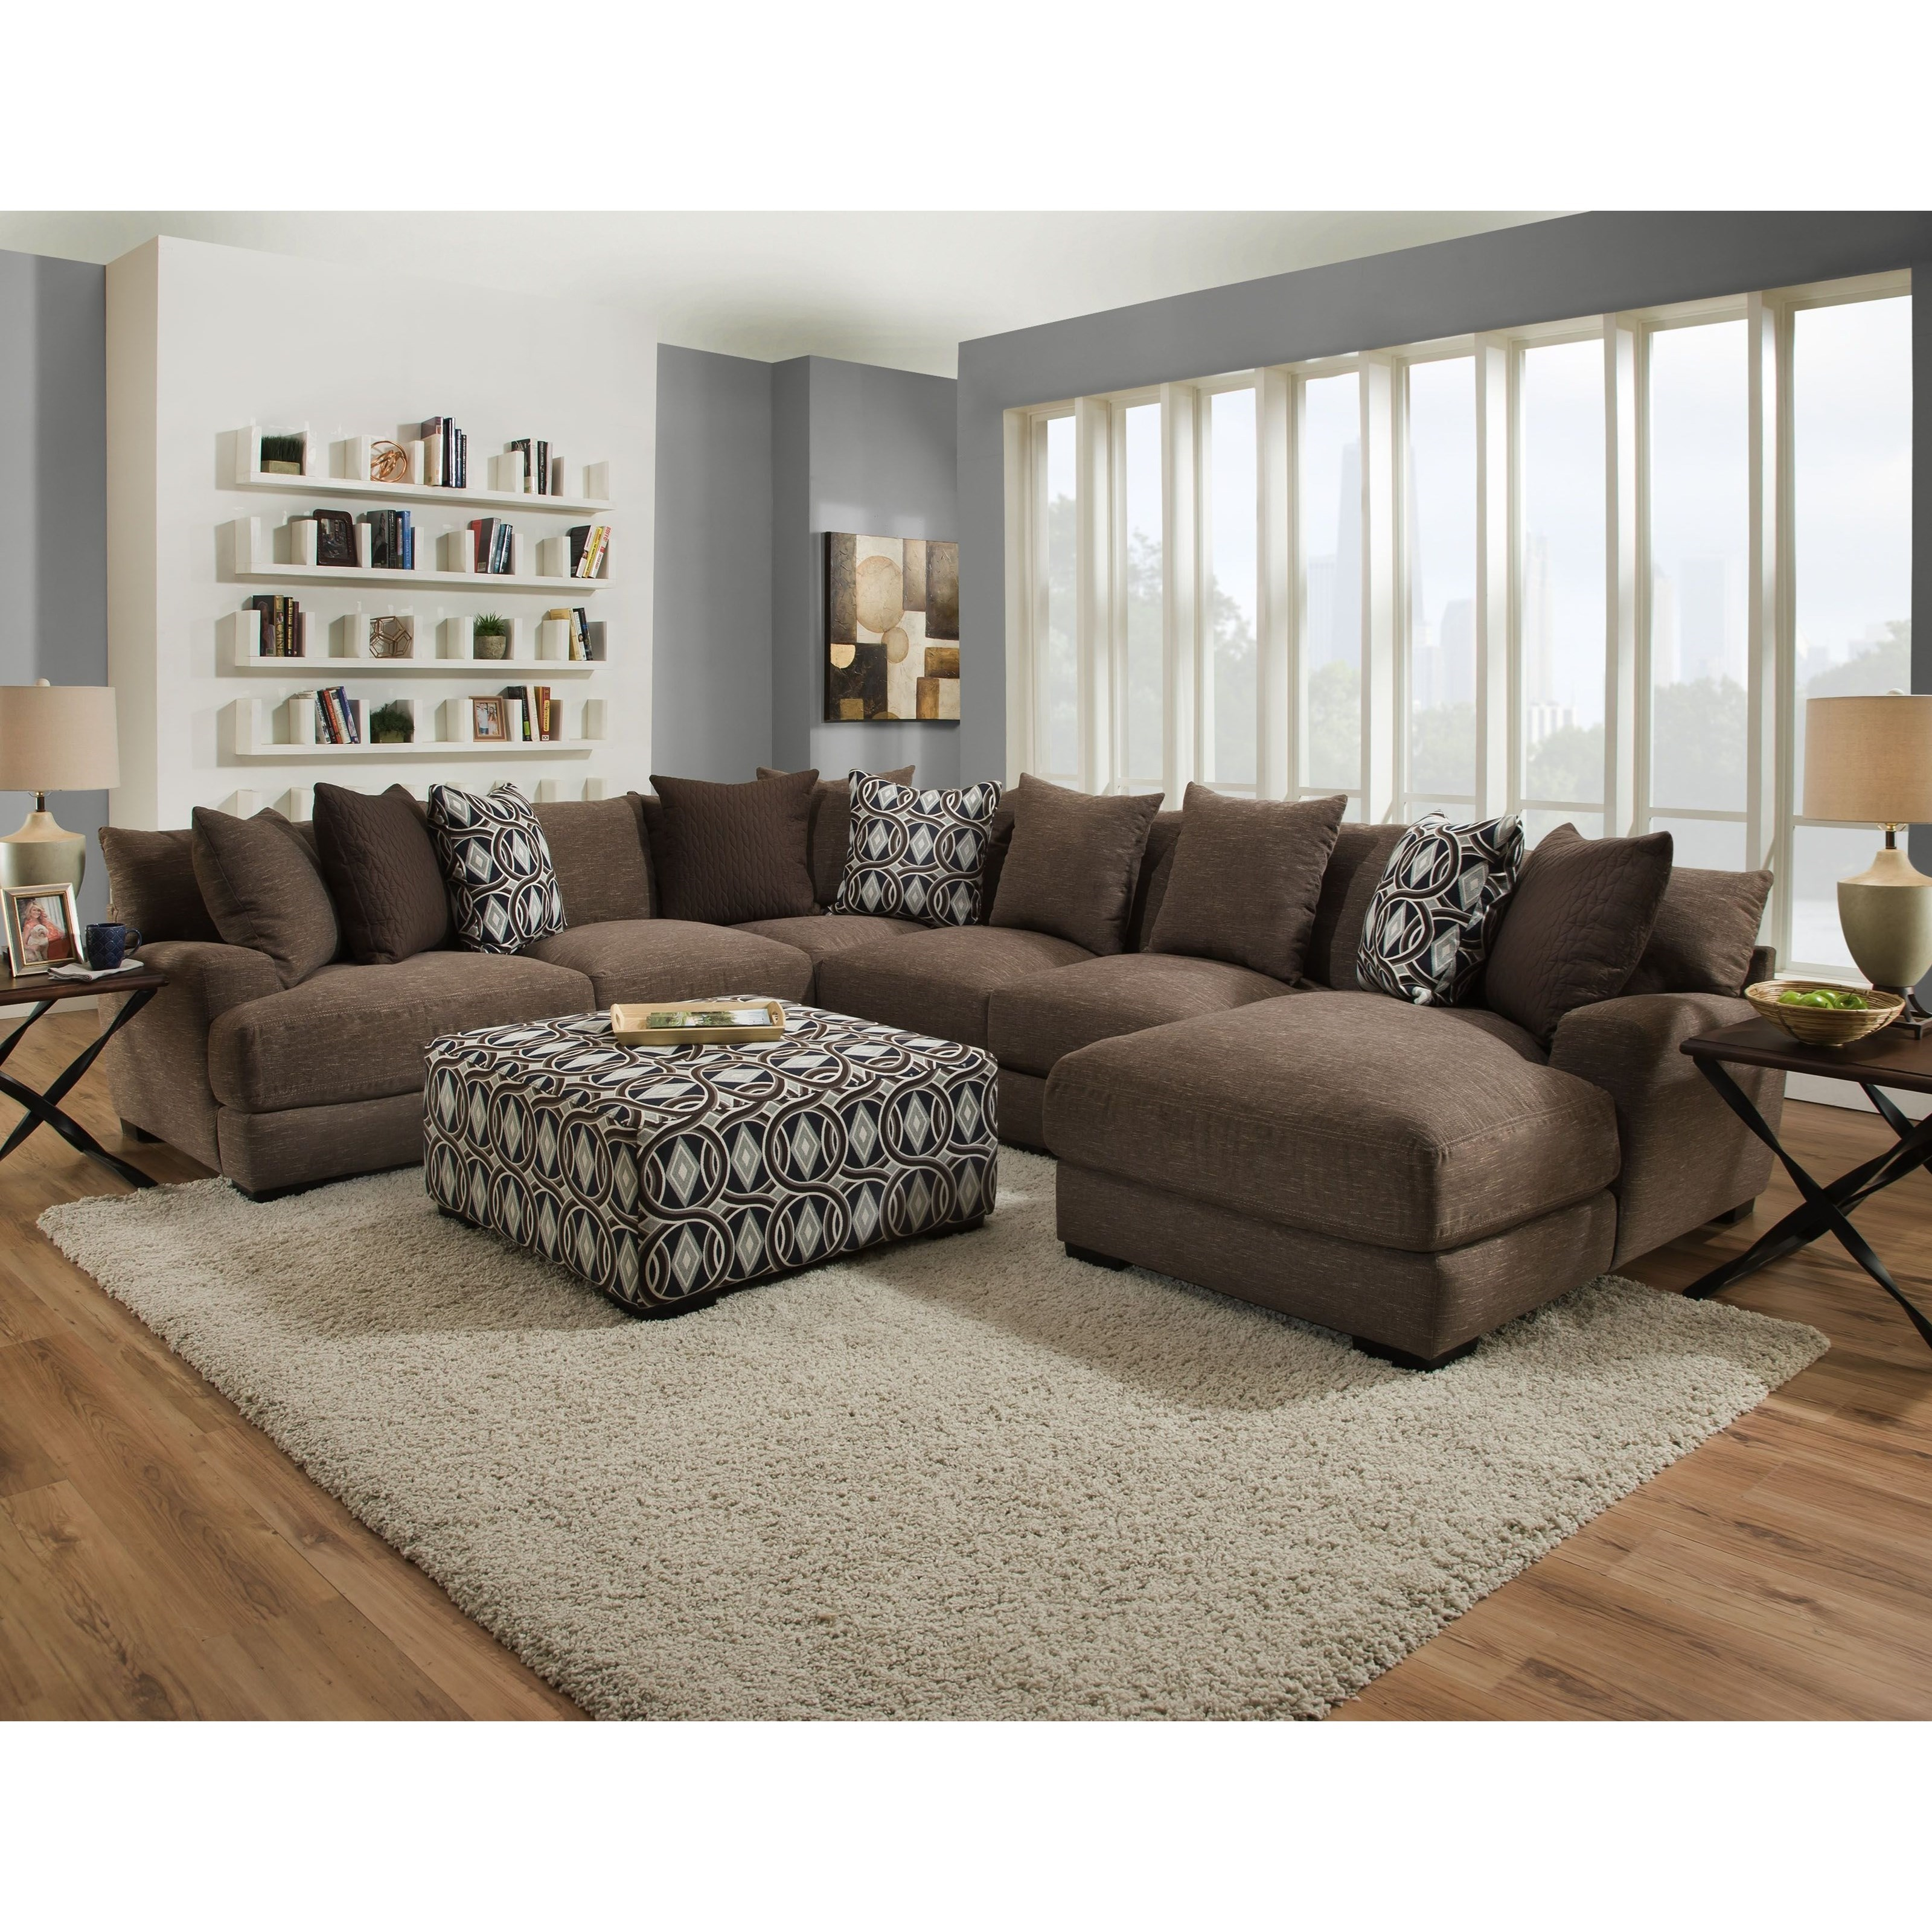 Cadet Sectional Sofa with 5 Seats and Chaise by Franklin at Howell Furniture